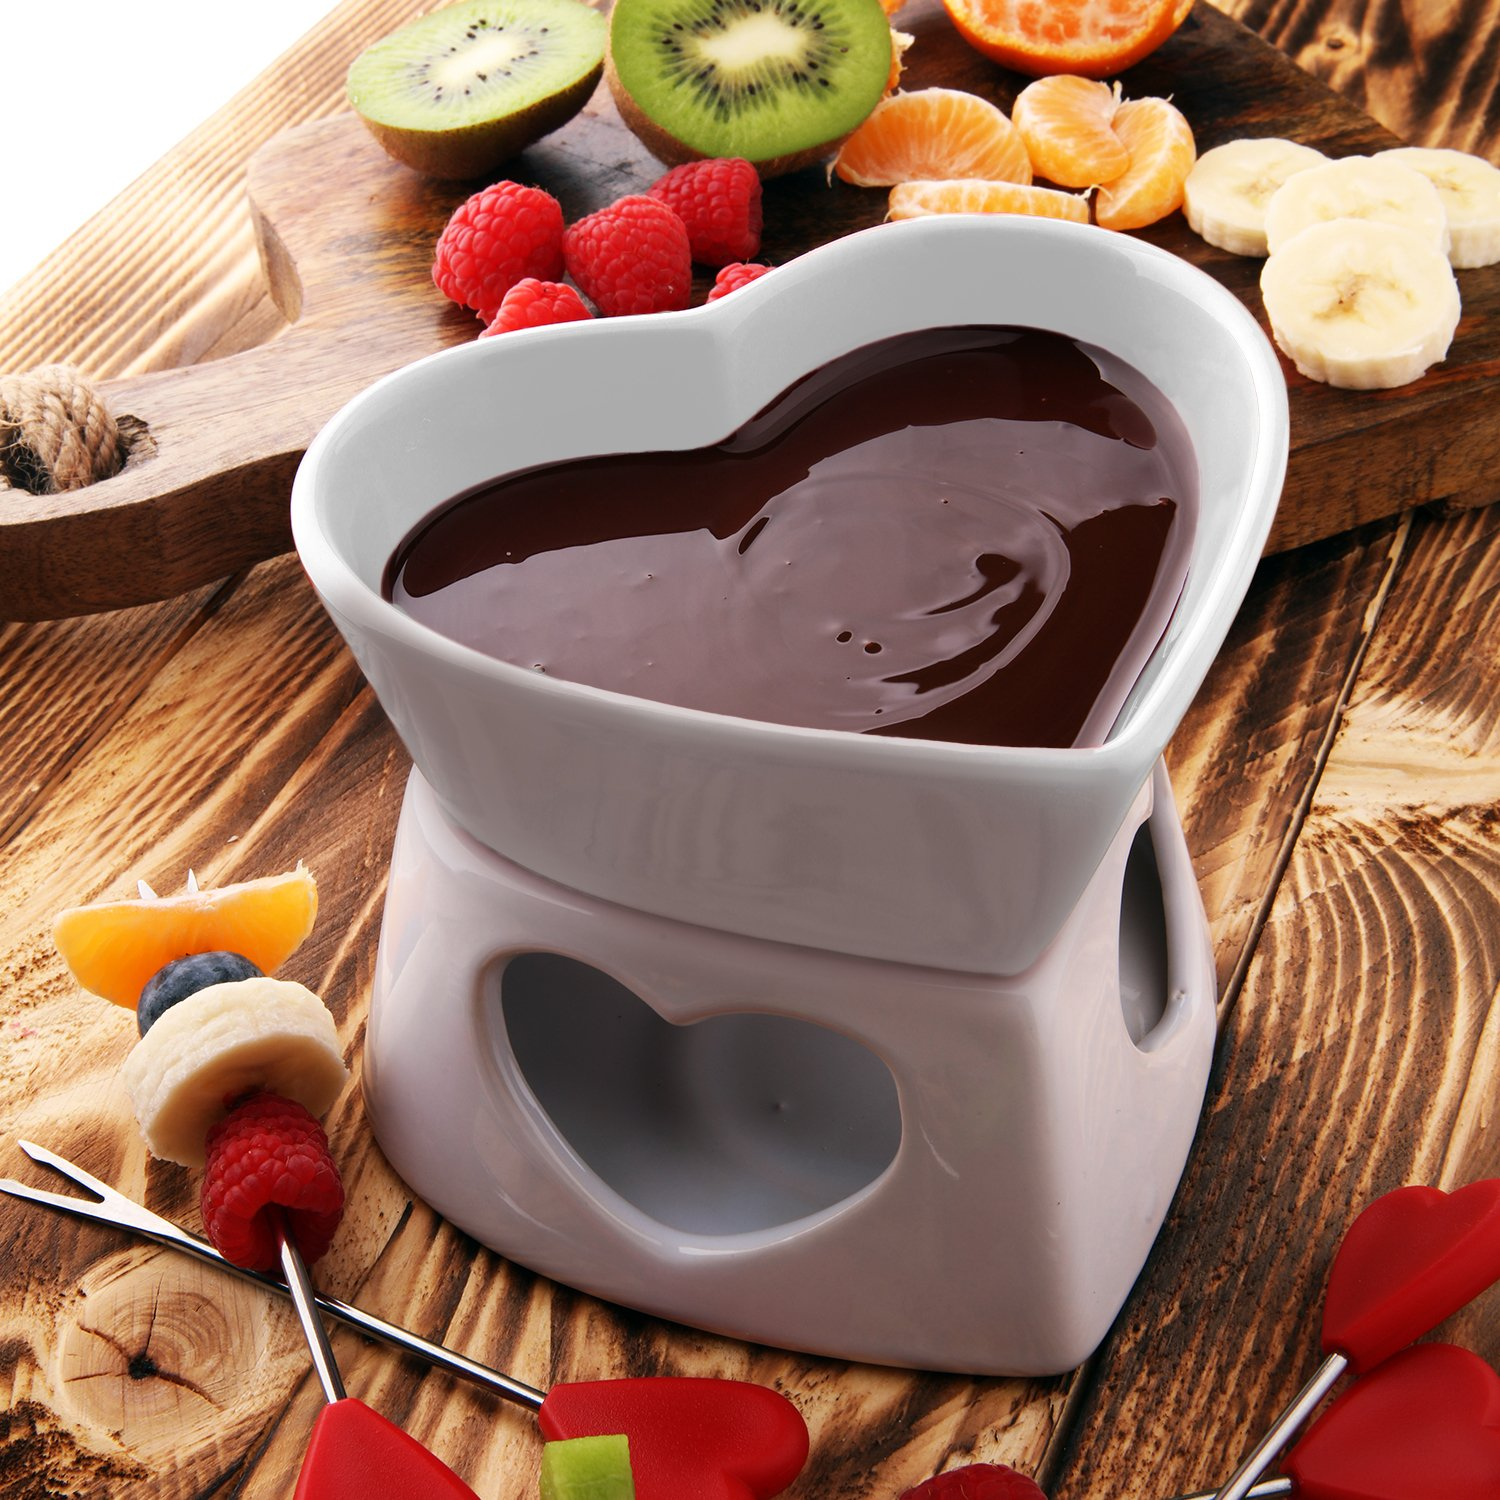 How to melt the chocolate Cooking glaze and fondue